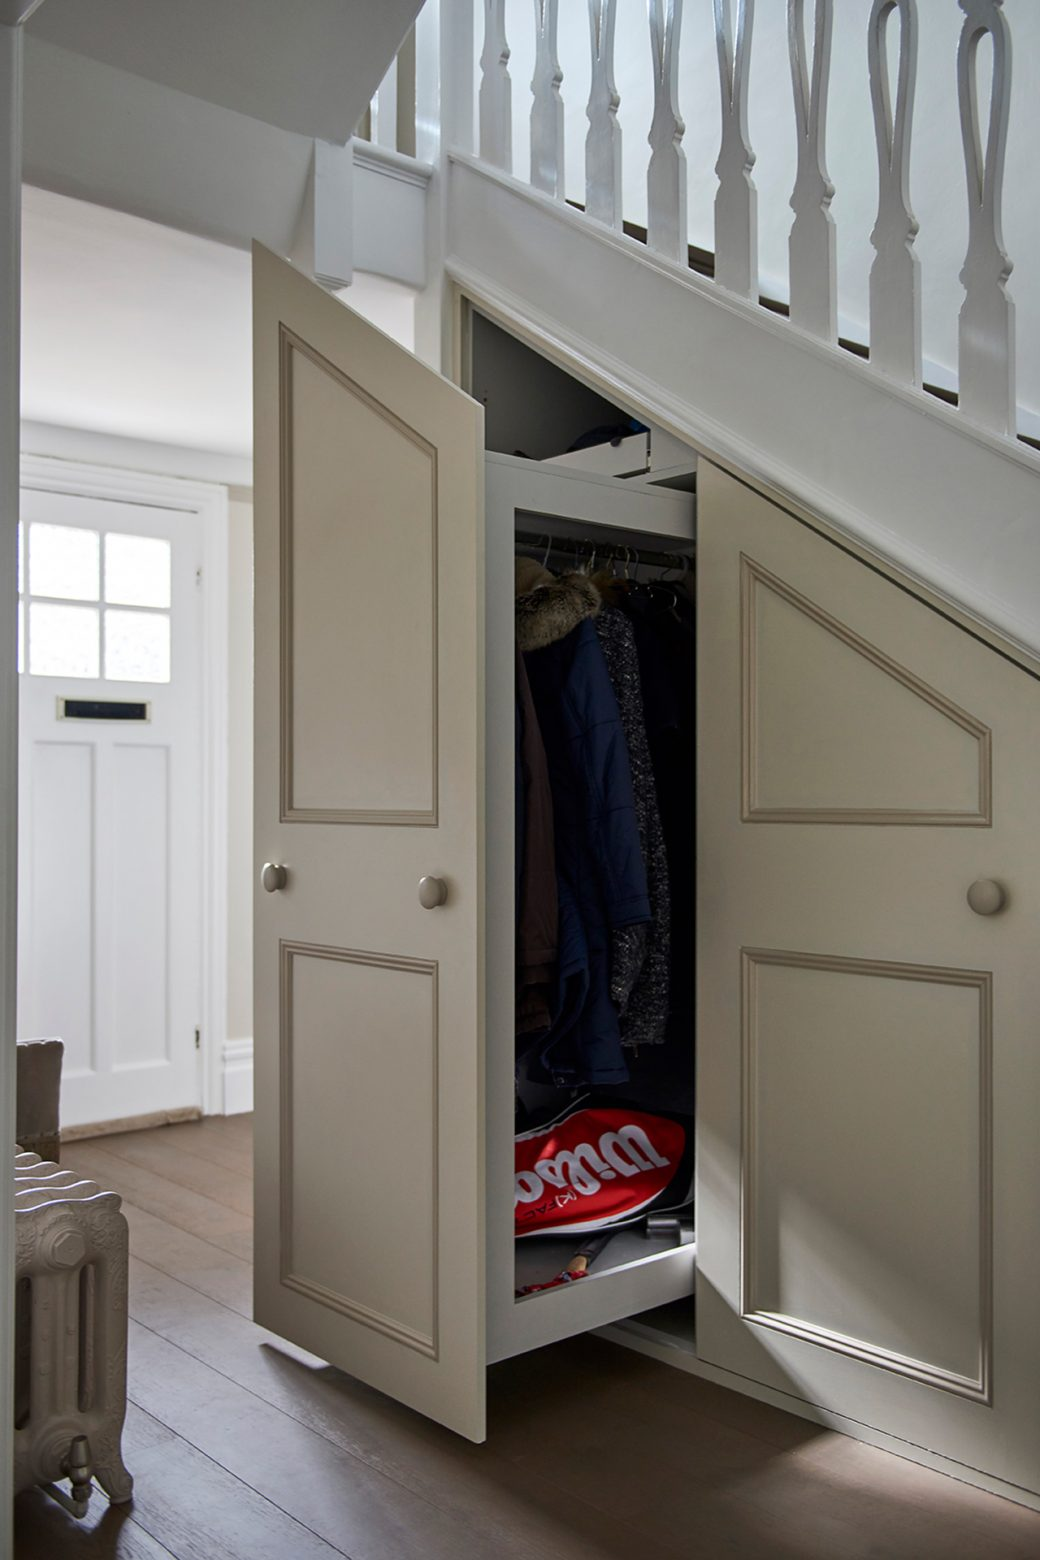 The built in storage opened to show the under stairs system